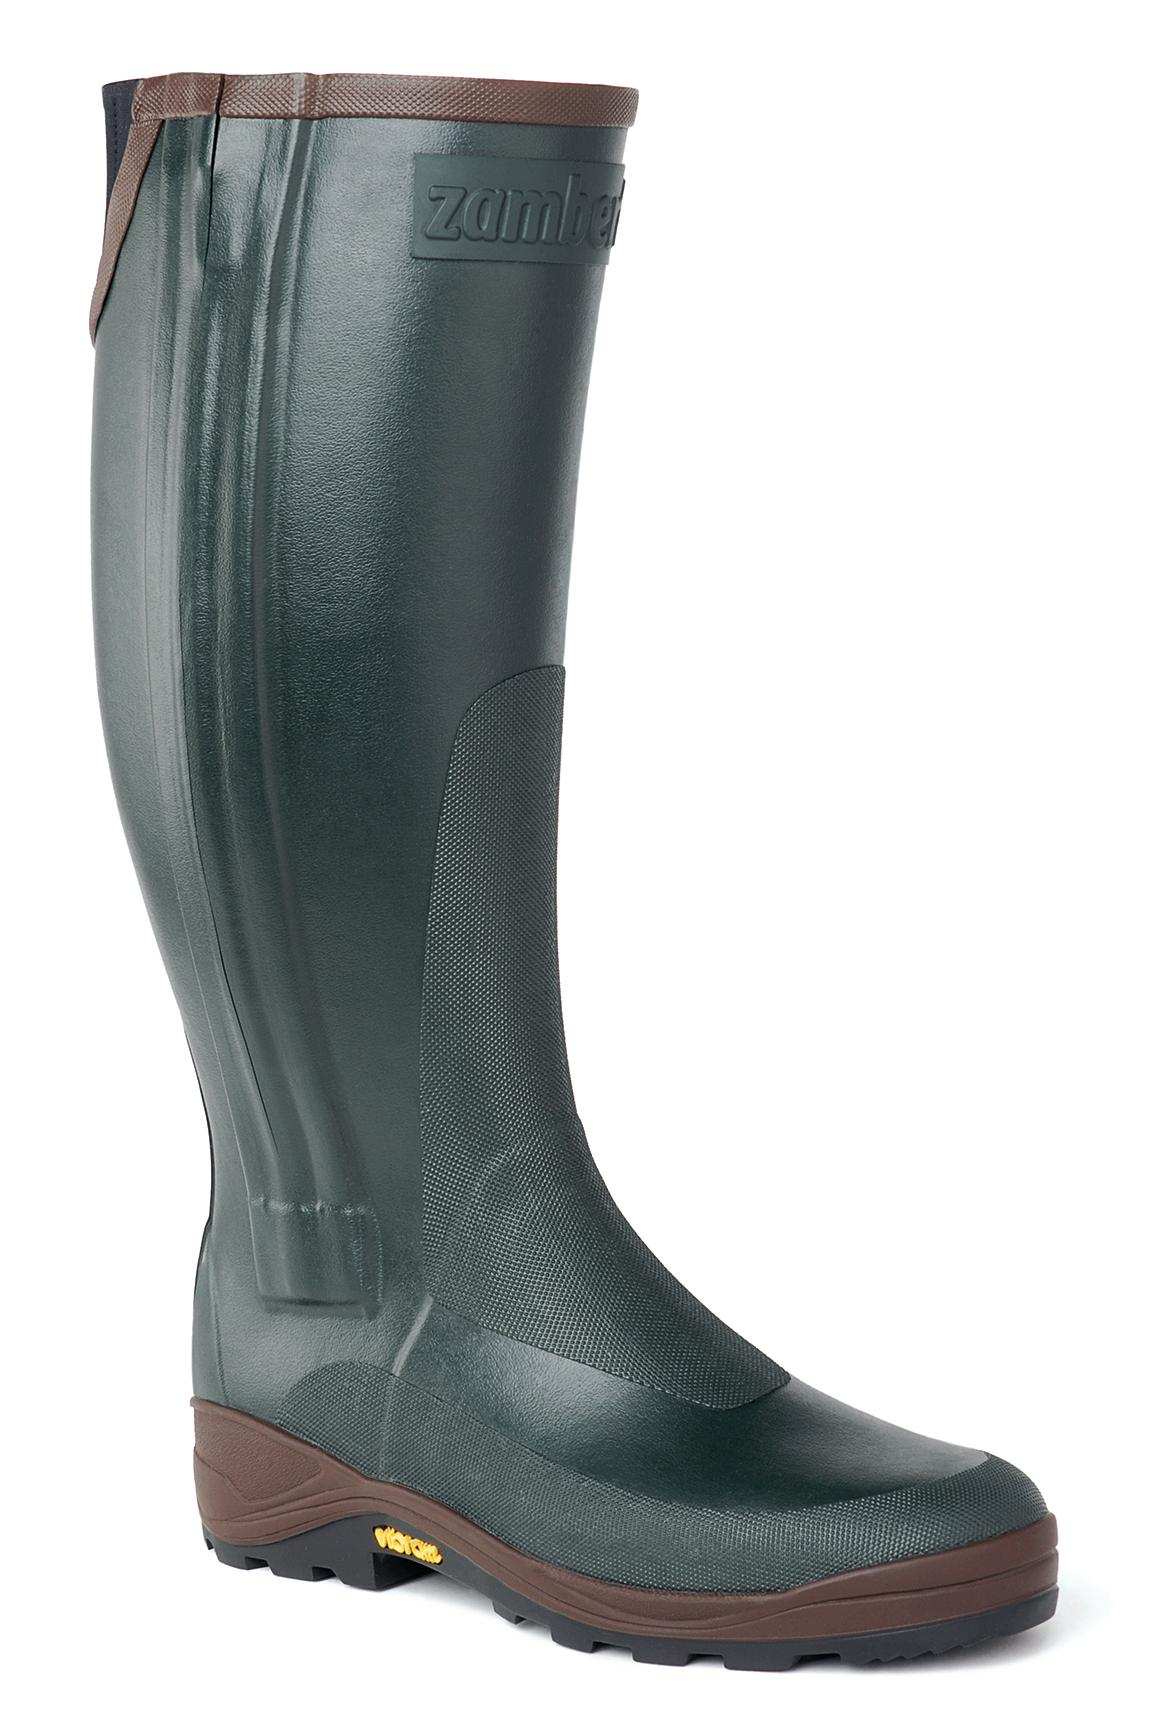 S10 BOOTS  CANADA N.   -   Bottes waders et cuissardes  Chasse     -   Dark Green